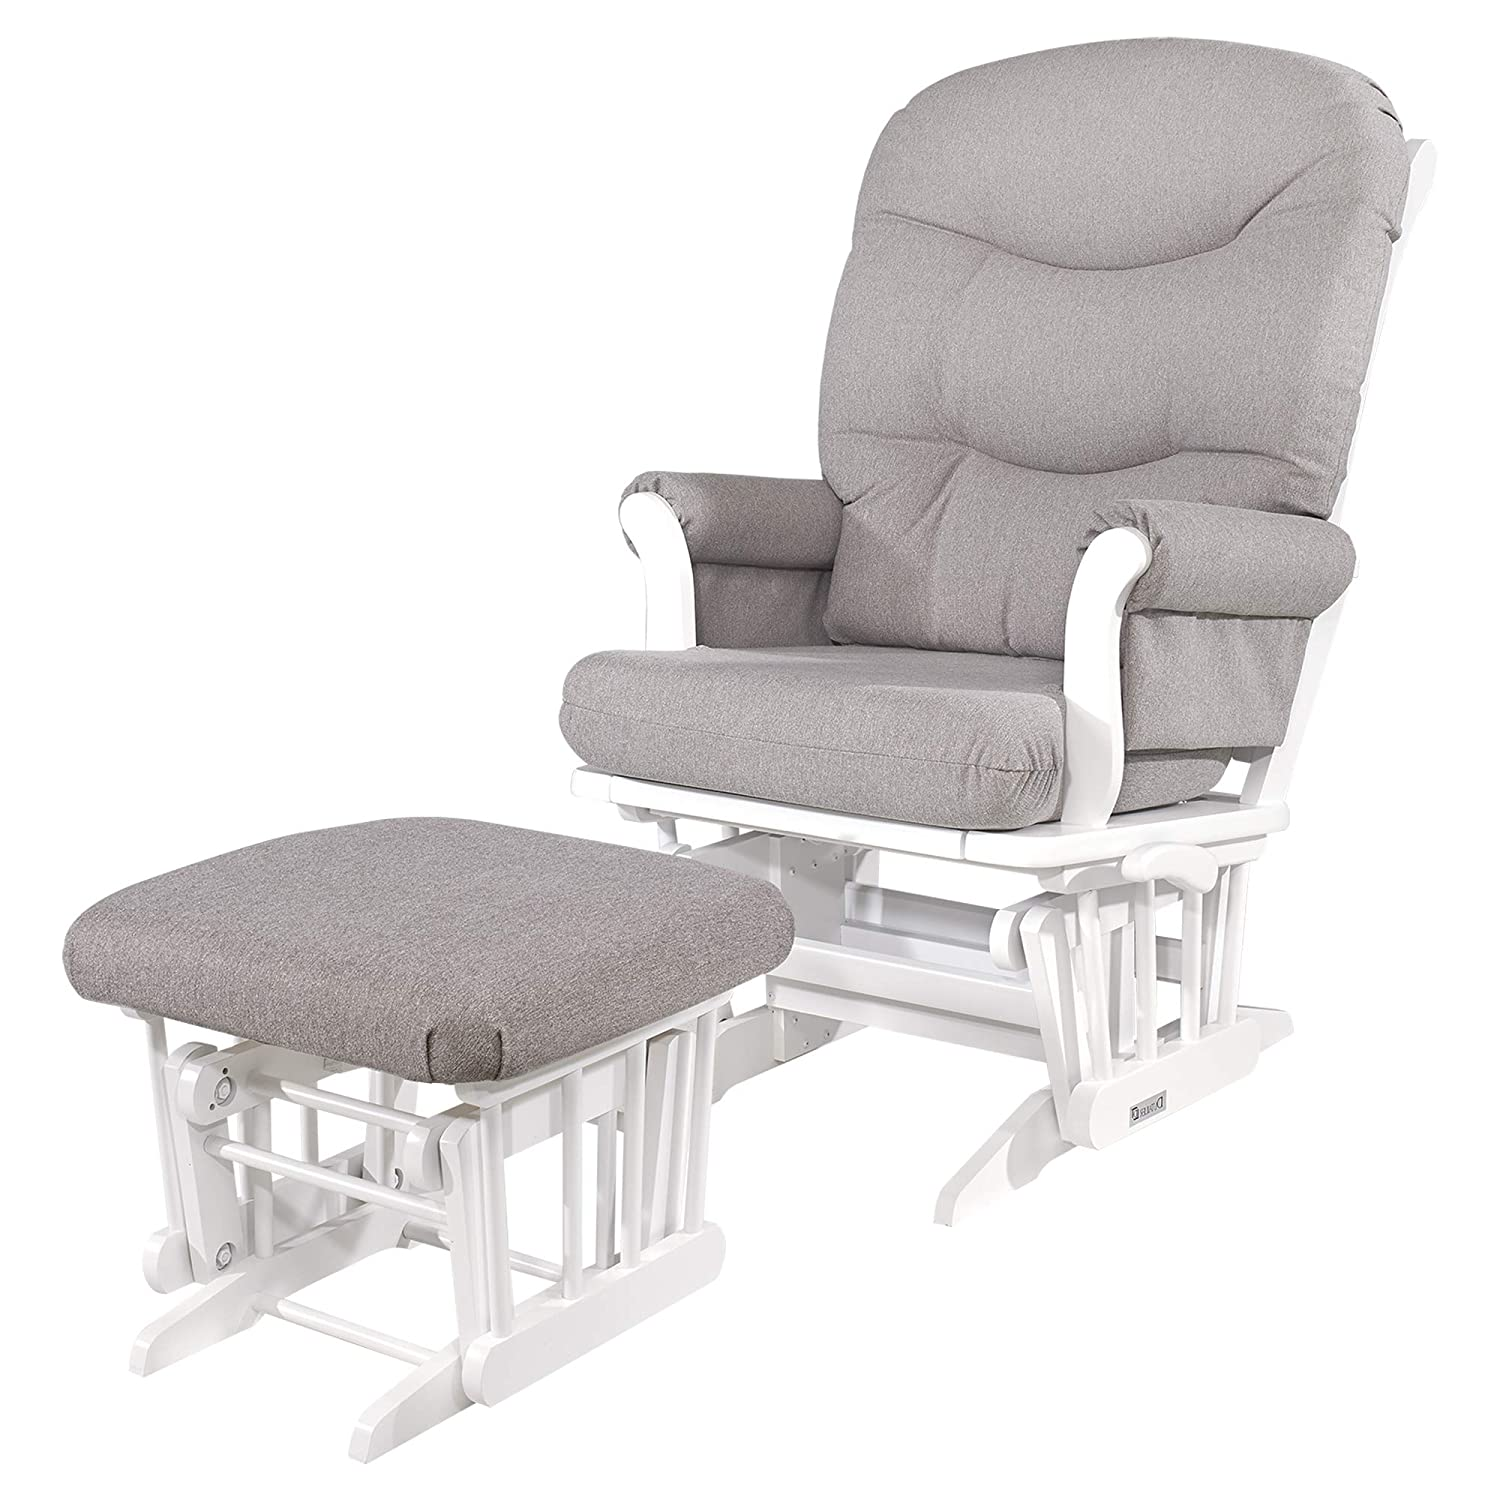 Amazon Com Dutailier Adèle Glider Chair And Ottoman Set With Multi Position Lock White Light Grey Baby